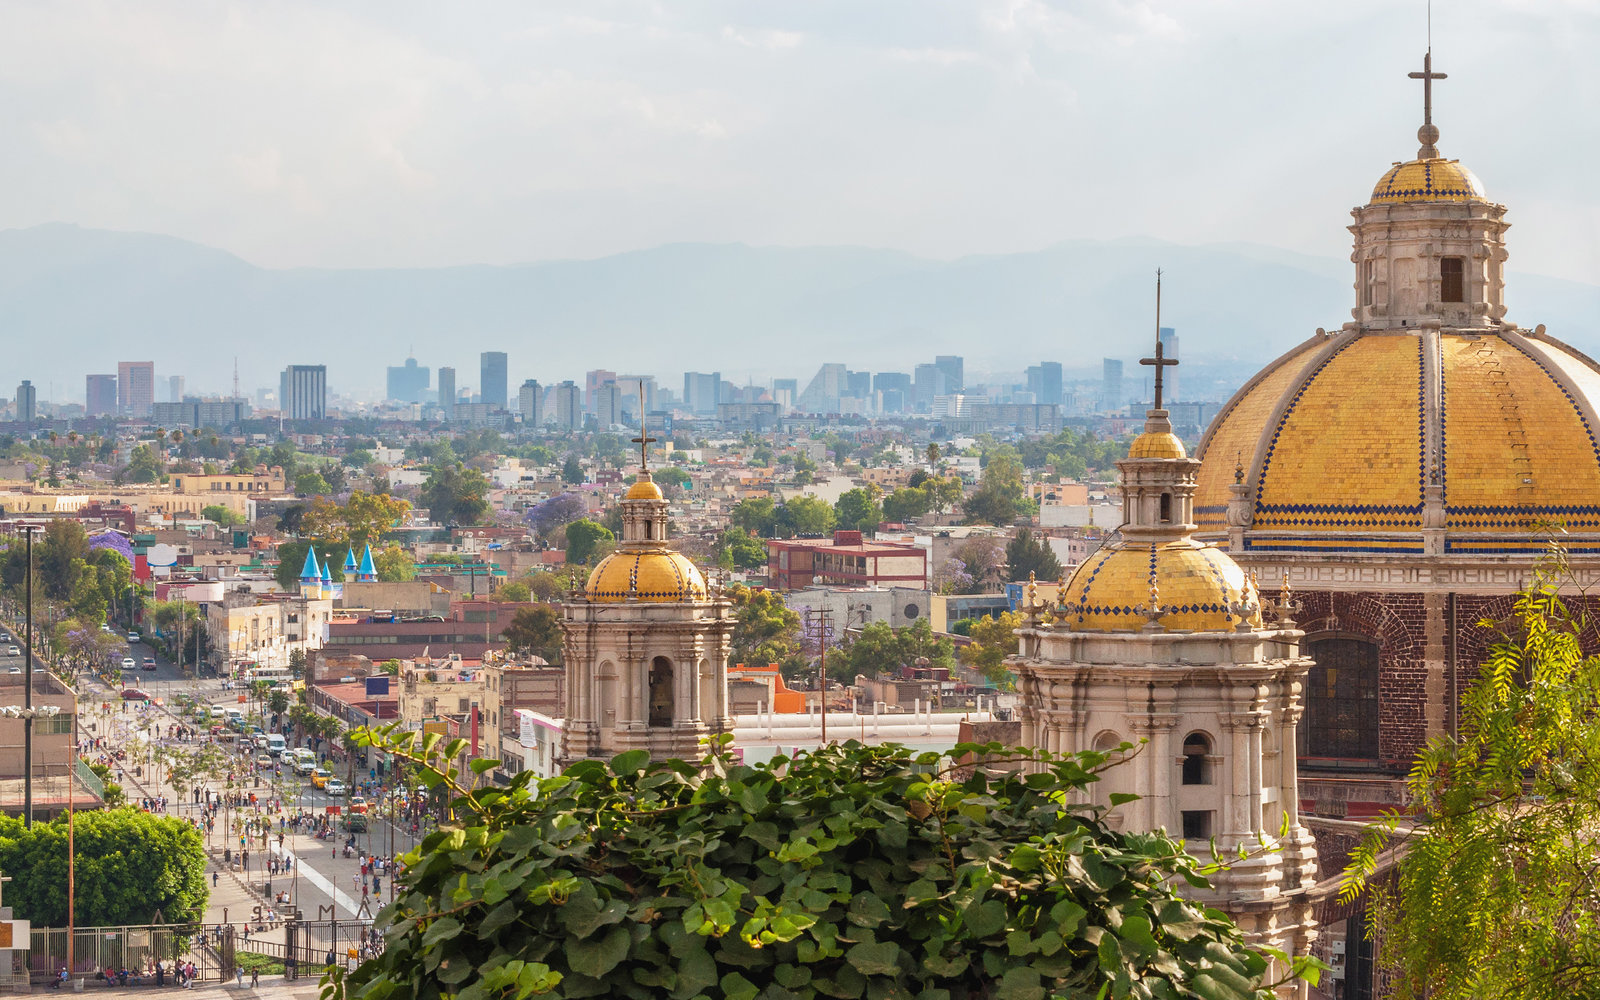 Living as an expat in Mexico